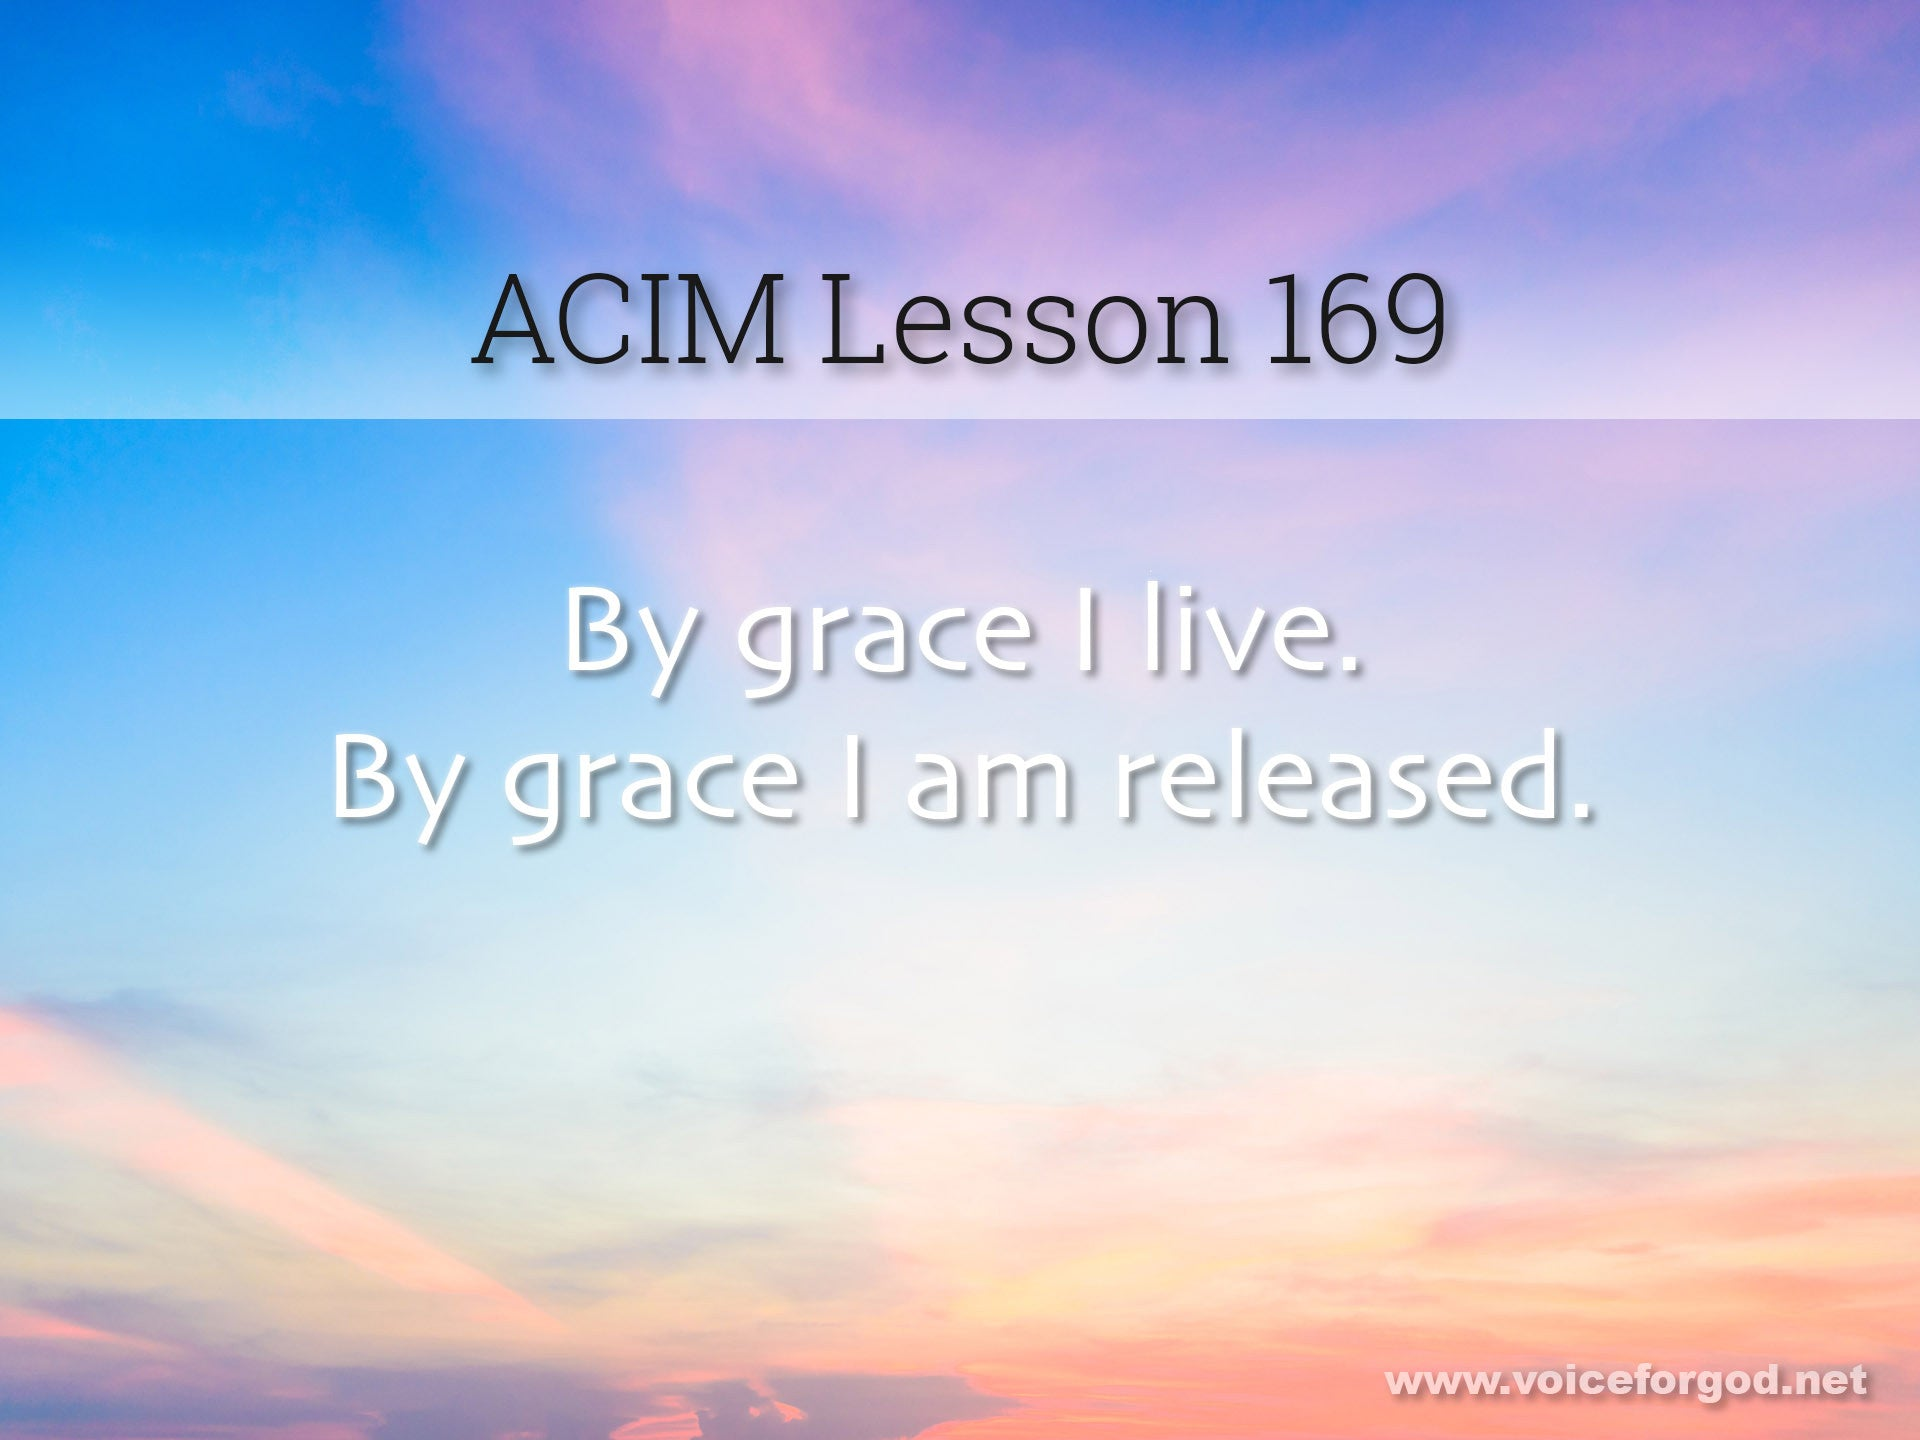 ACIM Lesson 169 - A Course in Miracles Workbook Lesson 169